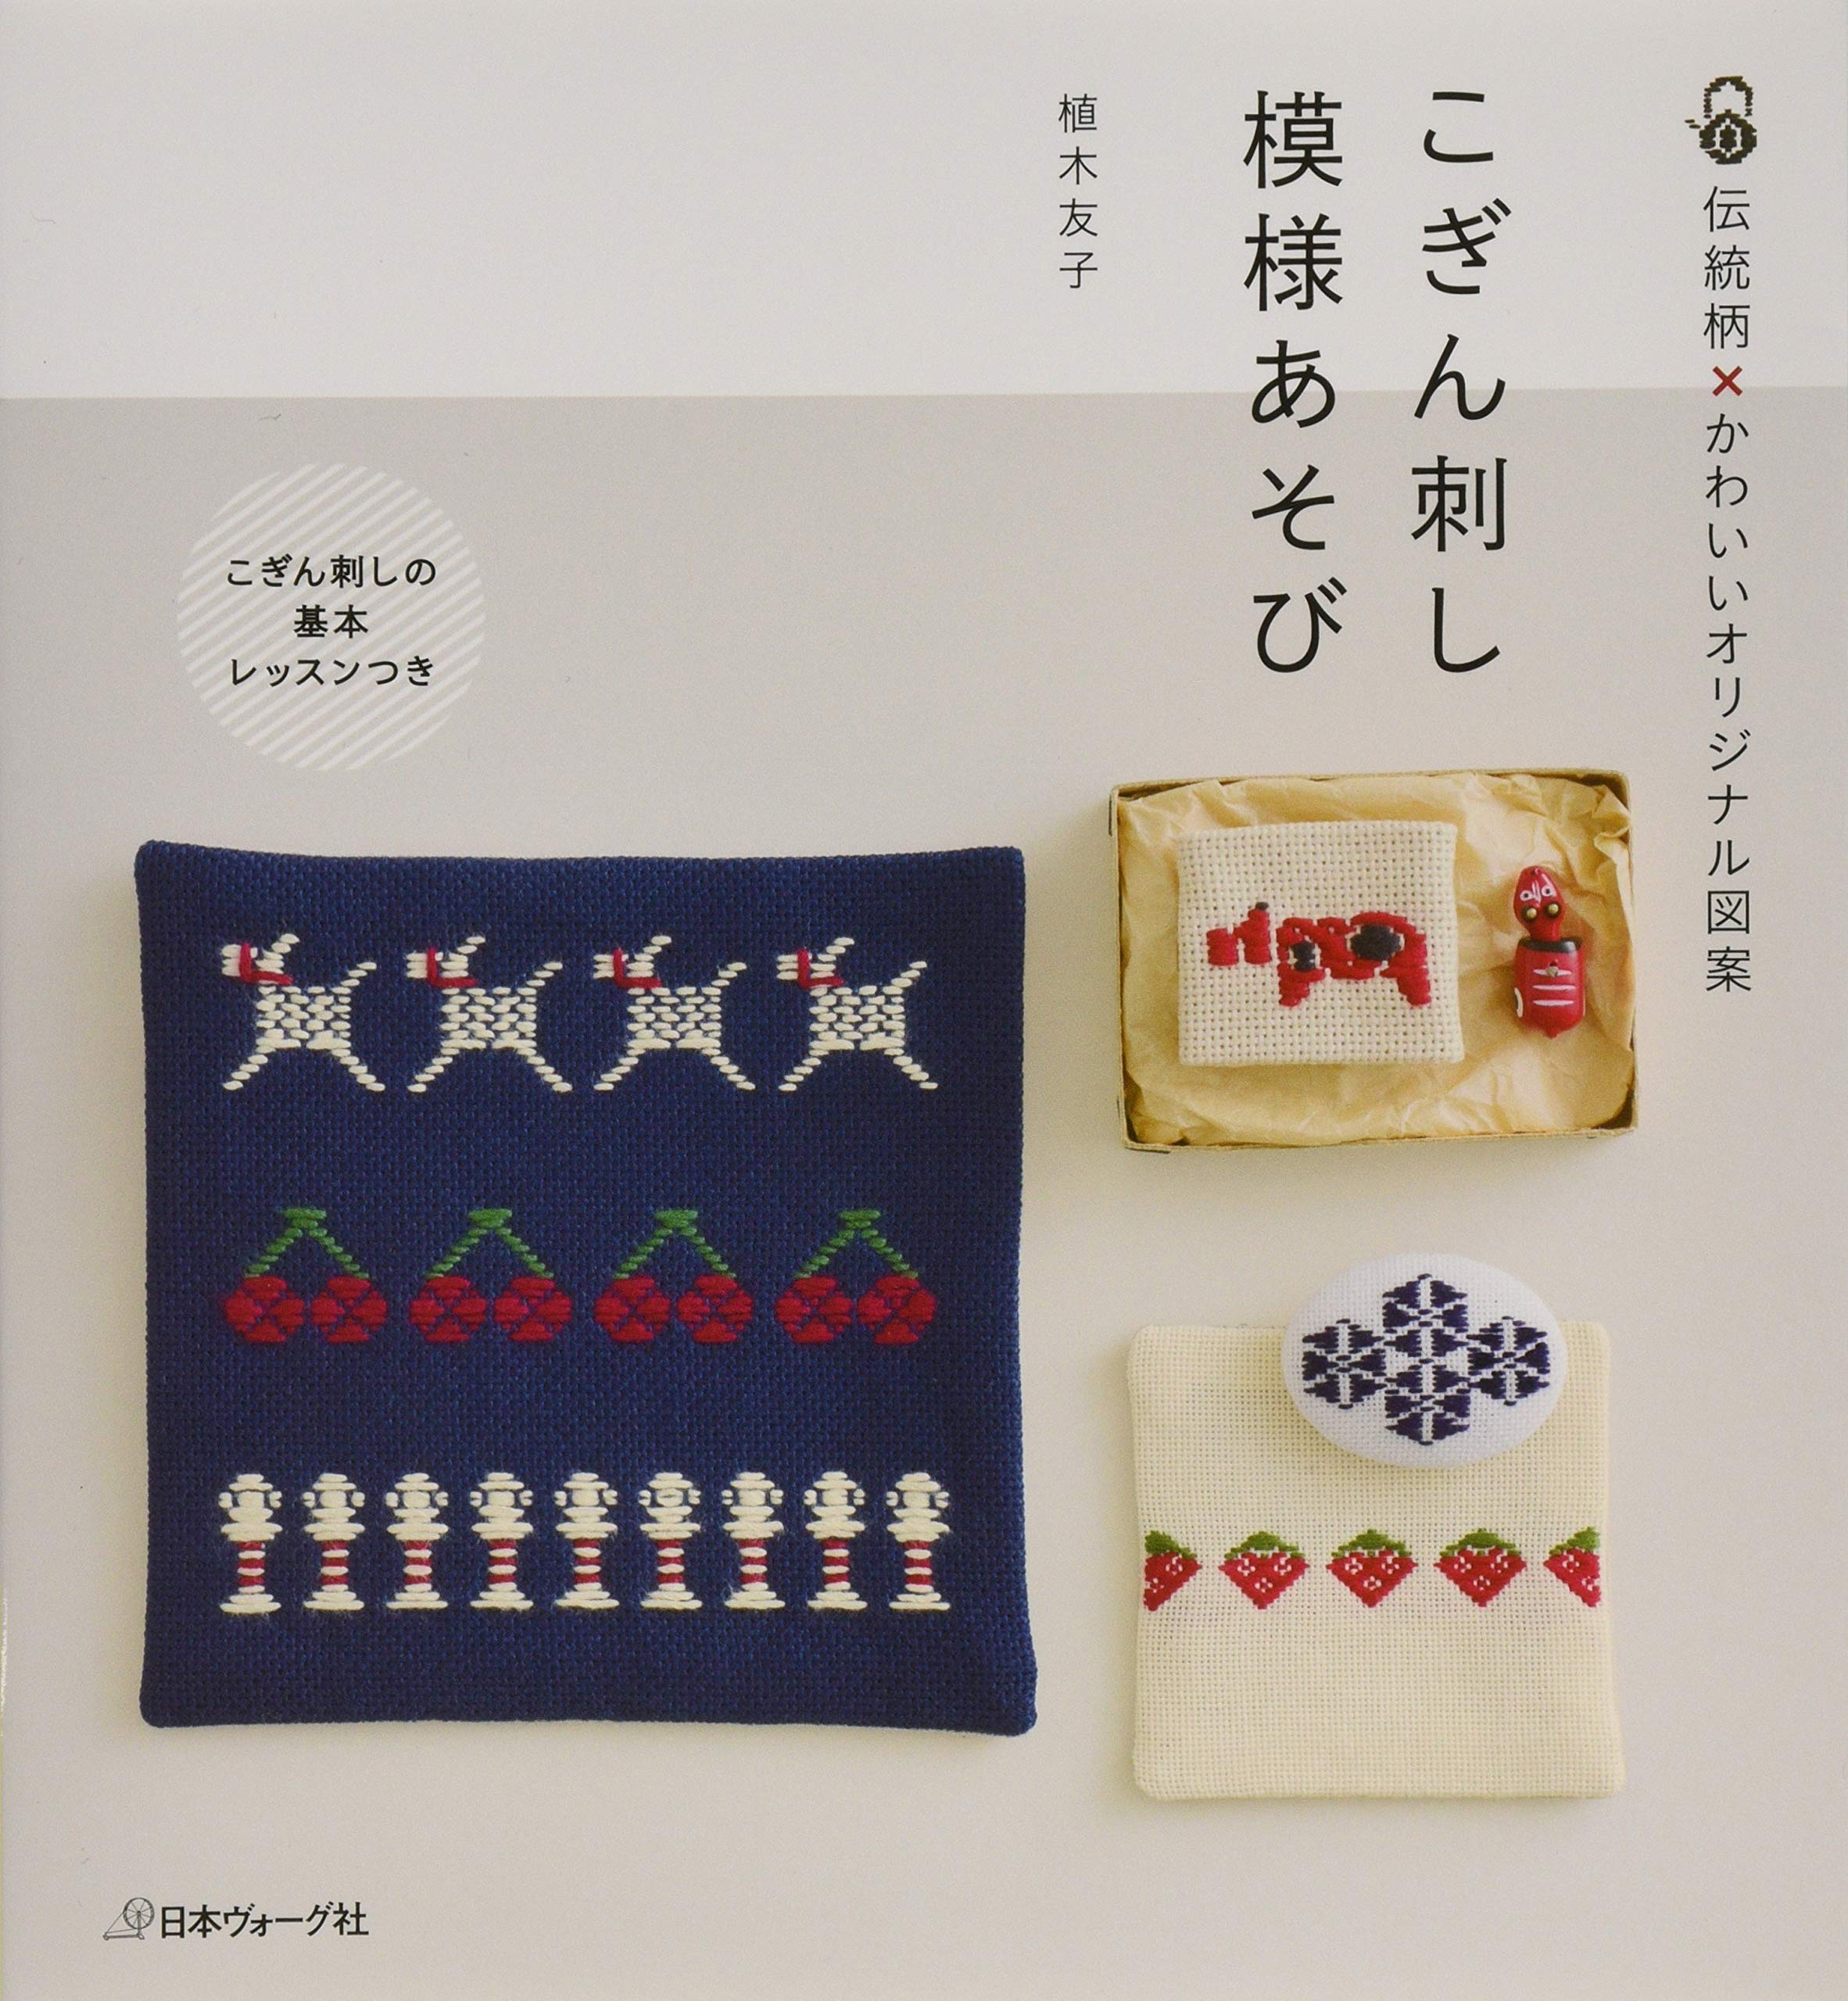 Pin Cushion Kogin Embroidery B616 Japanese Sashiko Stitch Pattern Book Bag Easy Tutorial Fugeiten Traditional Design Stole Pouch